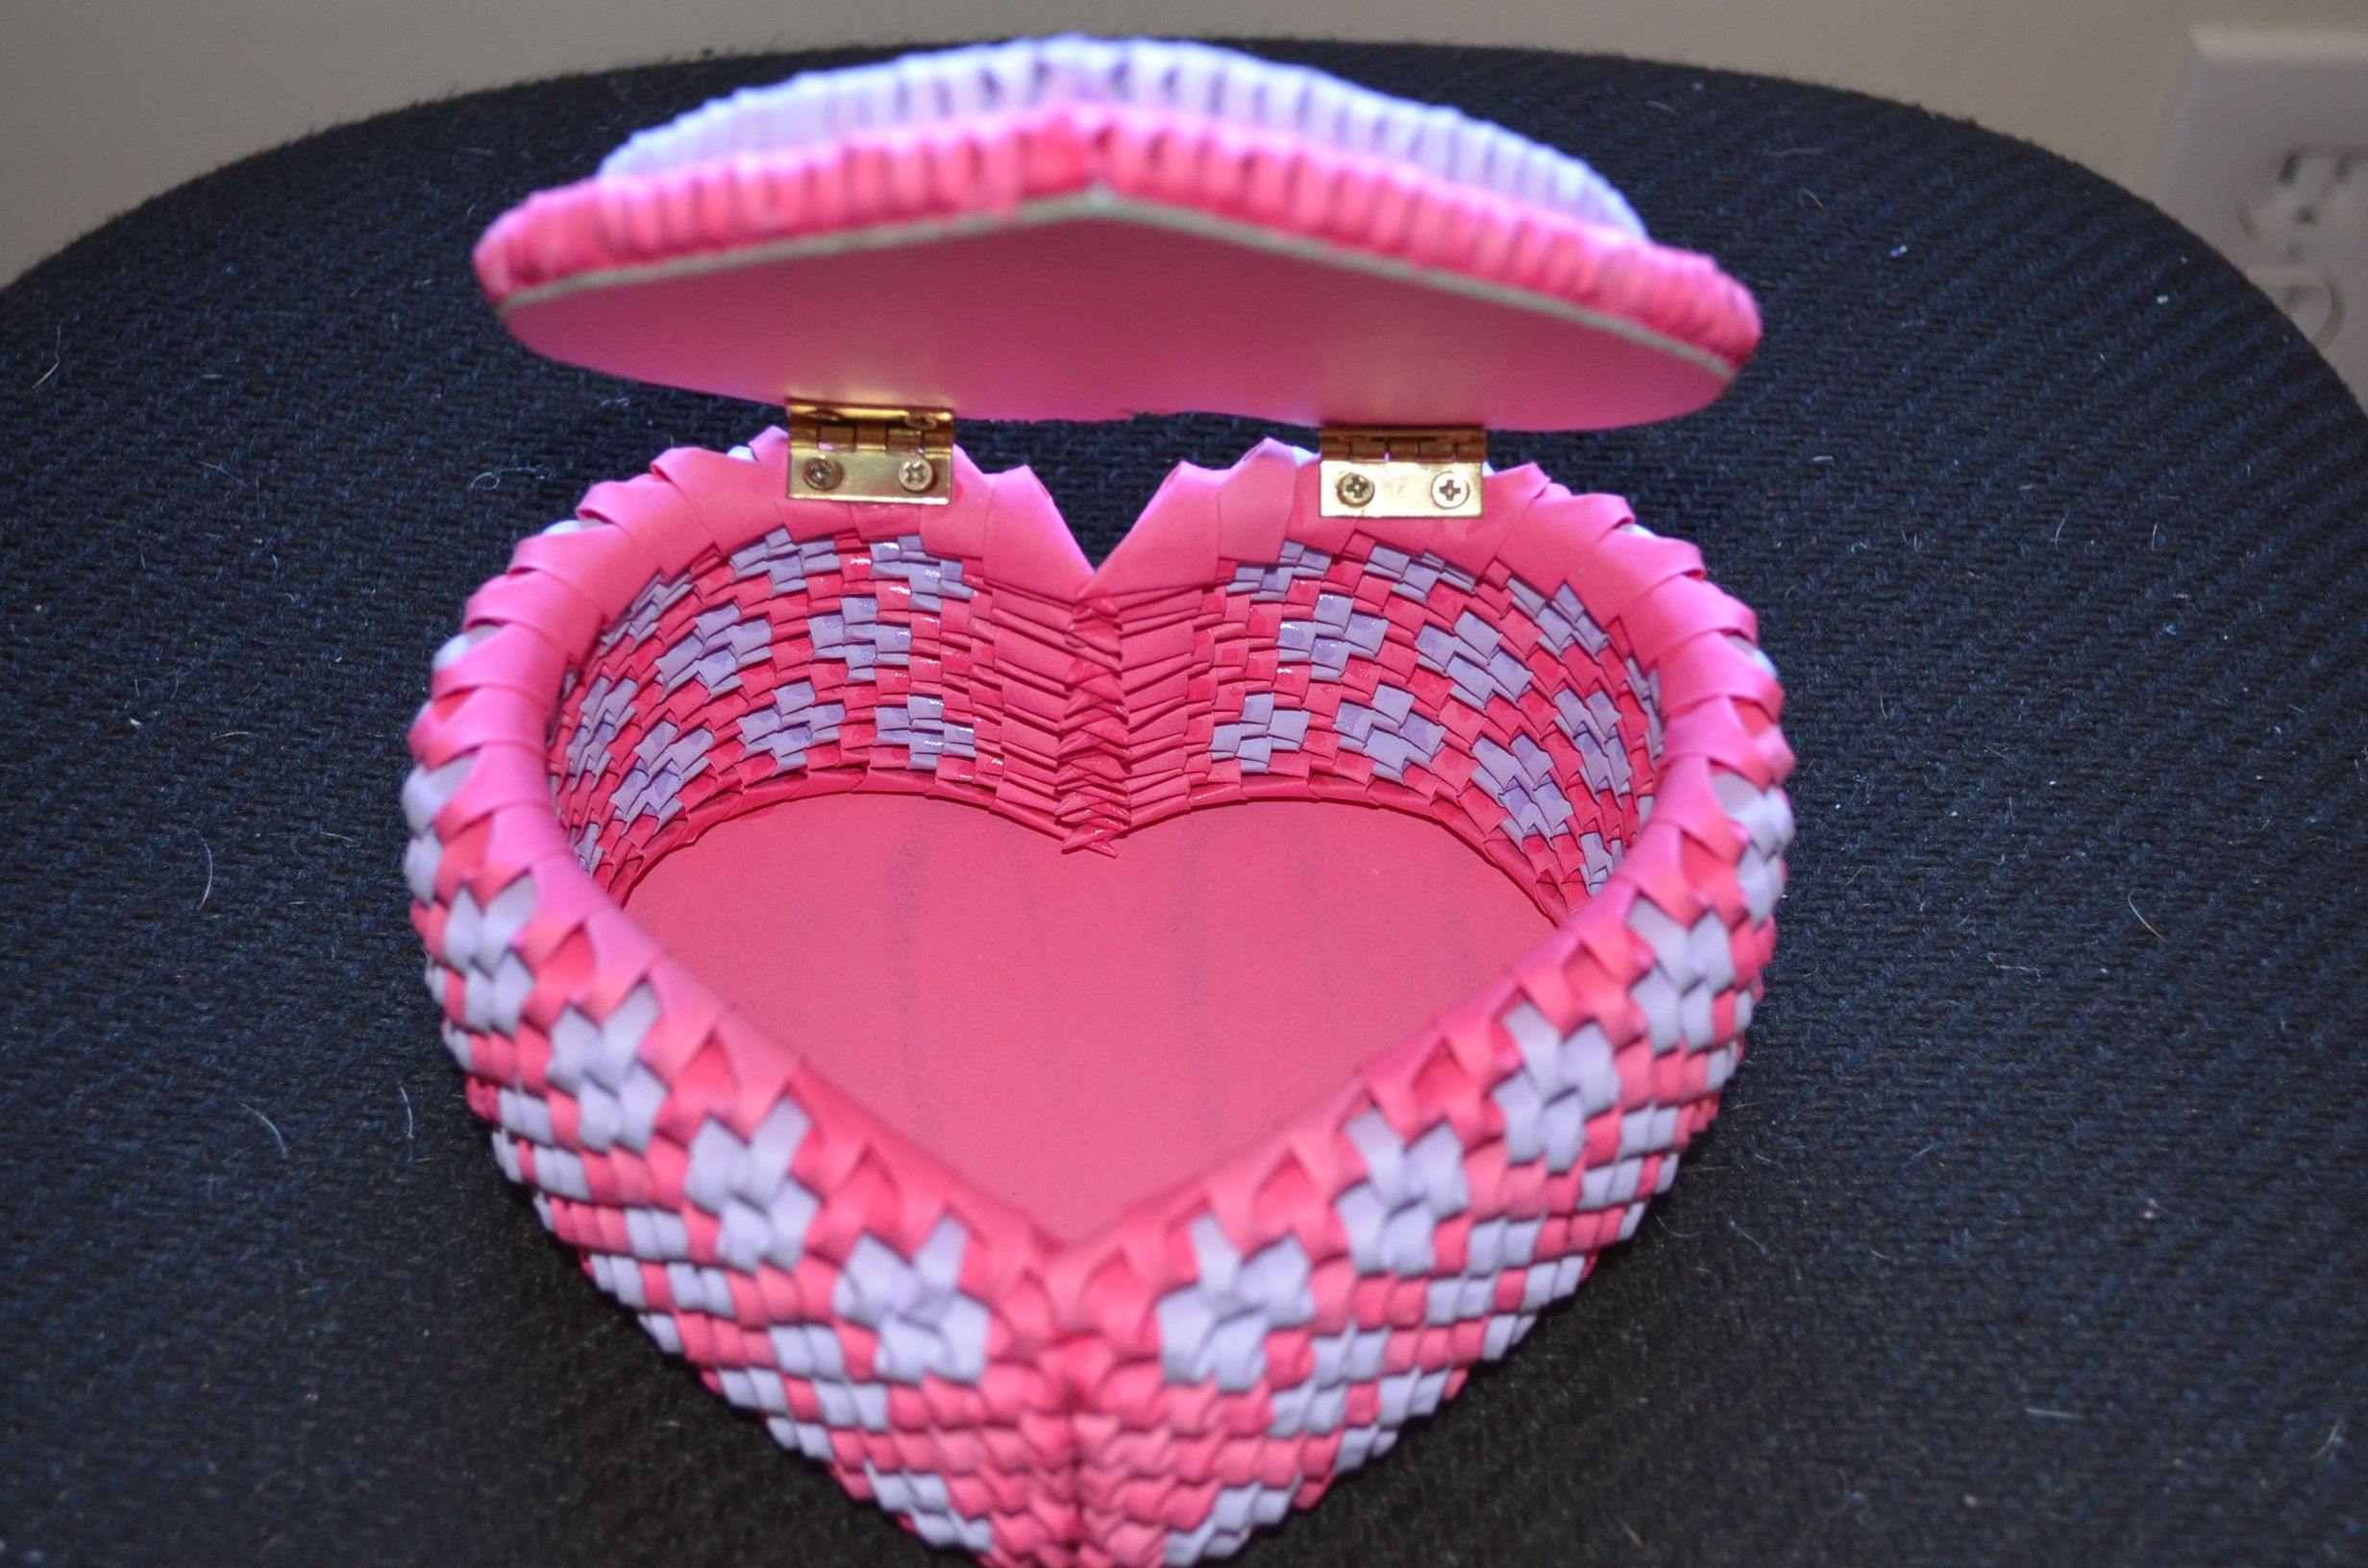 Heart Box | My 3d origami | Pinterest | Origami and Box - photo#7